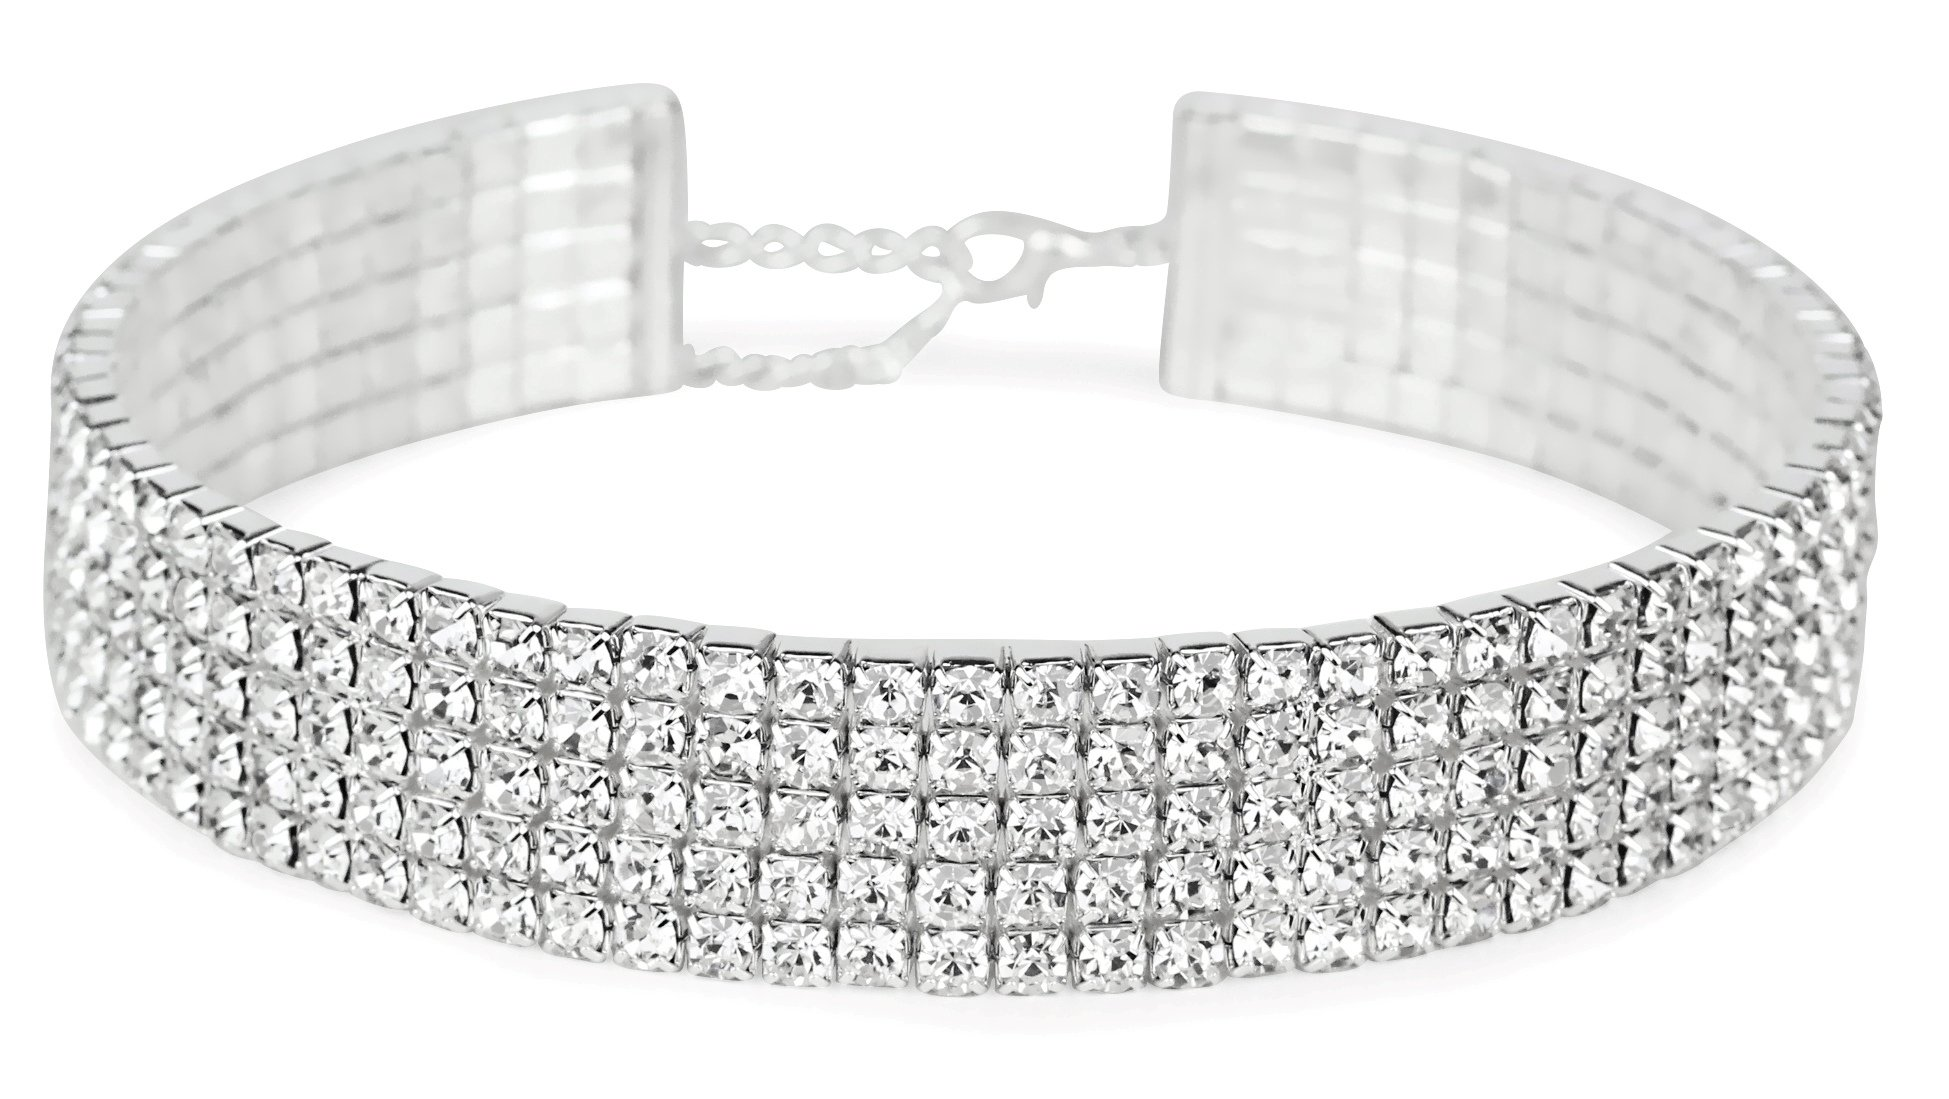 LuxeLife Rhinestone Choker 5 Row Silver by Women's Crystal Look Necklace with 5 Inch Extender Chain – Classic Fashion Jewelry Accessories – Matches Earrings and Bracelets Flawlessly